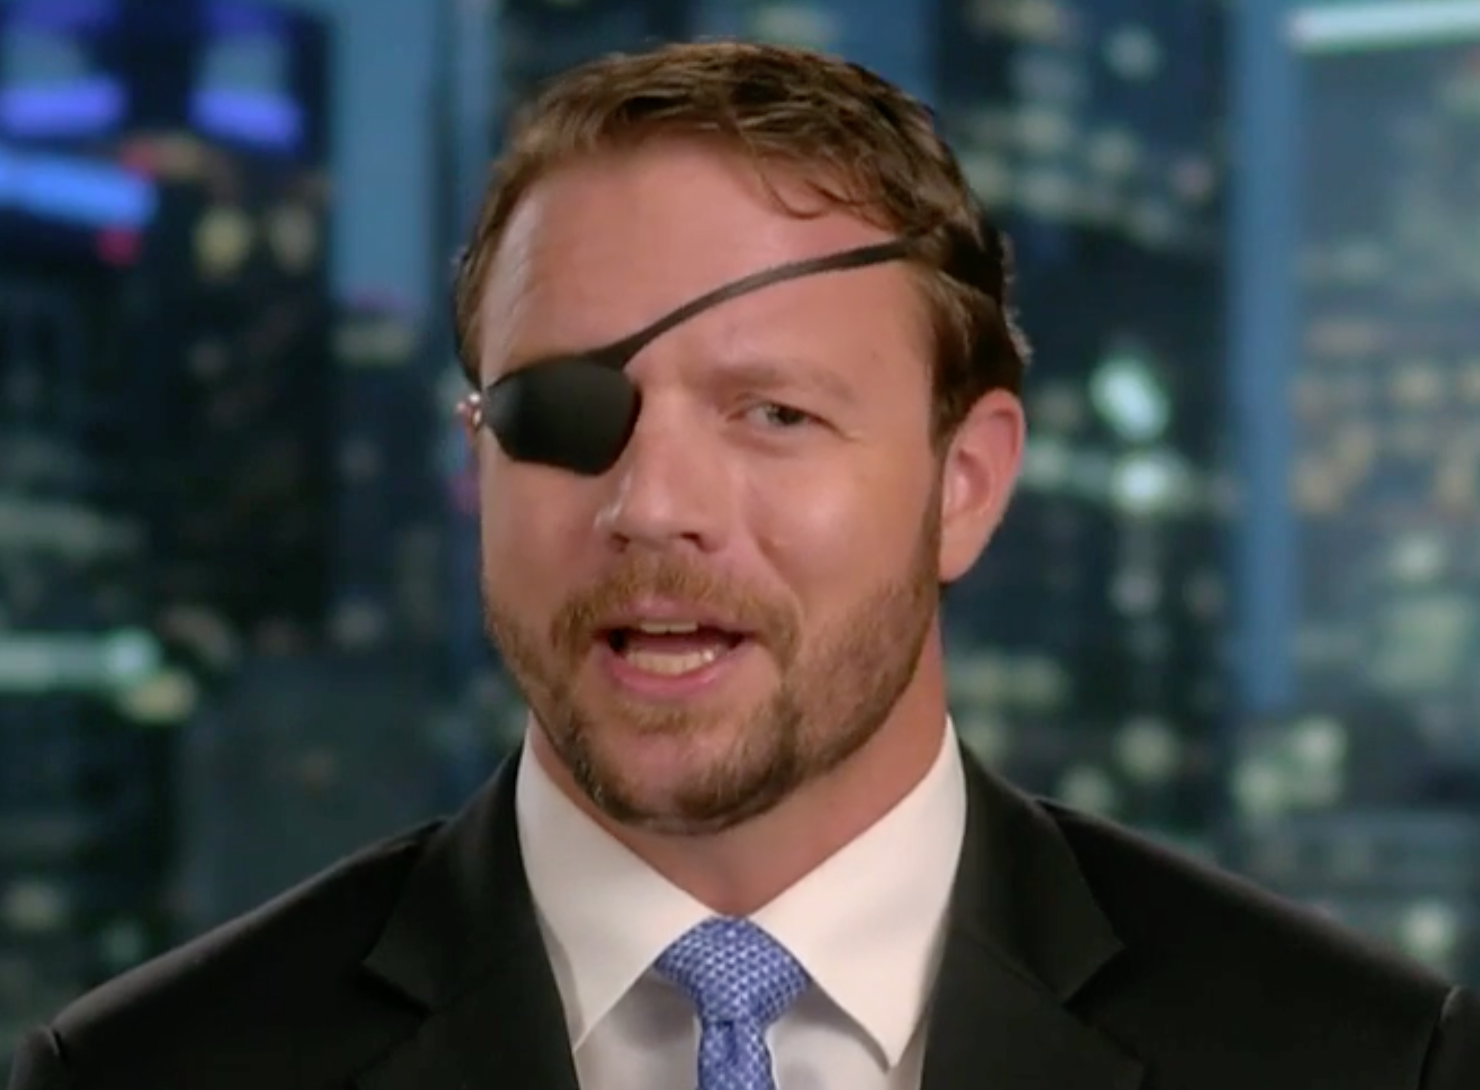 GOP's Dan Crenshaw fires back after called 'racist' by Democrat who compared Trump to Usama bin Laden